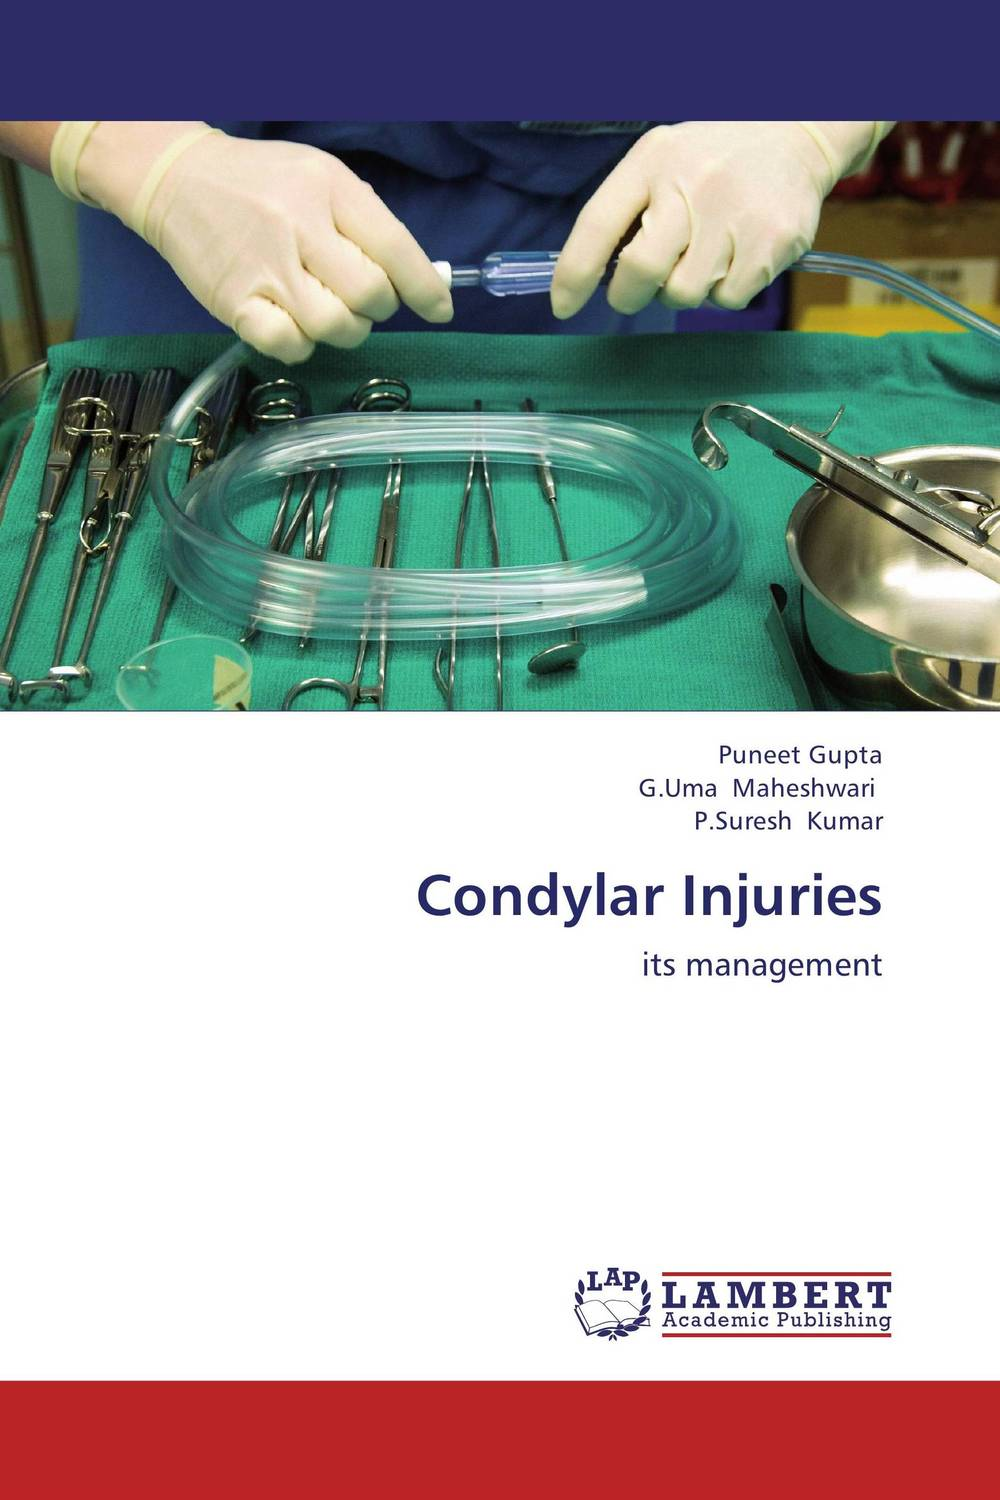 Condylar Injuries cryosurgery in oral and maxillofacial surgery